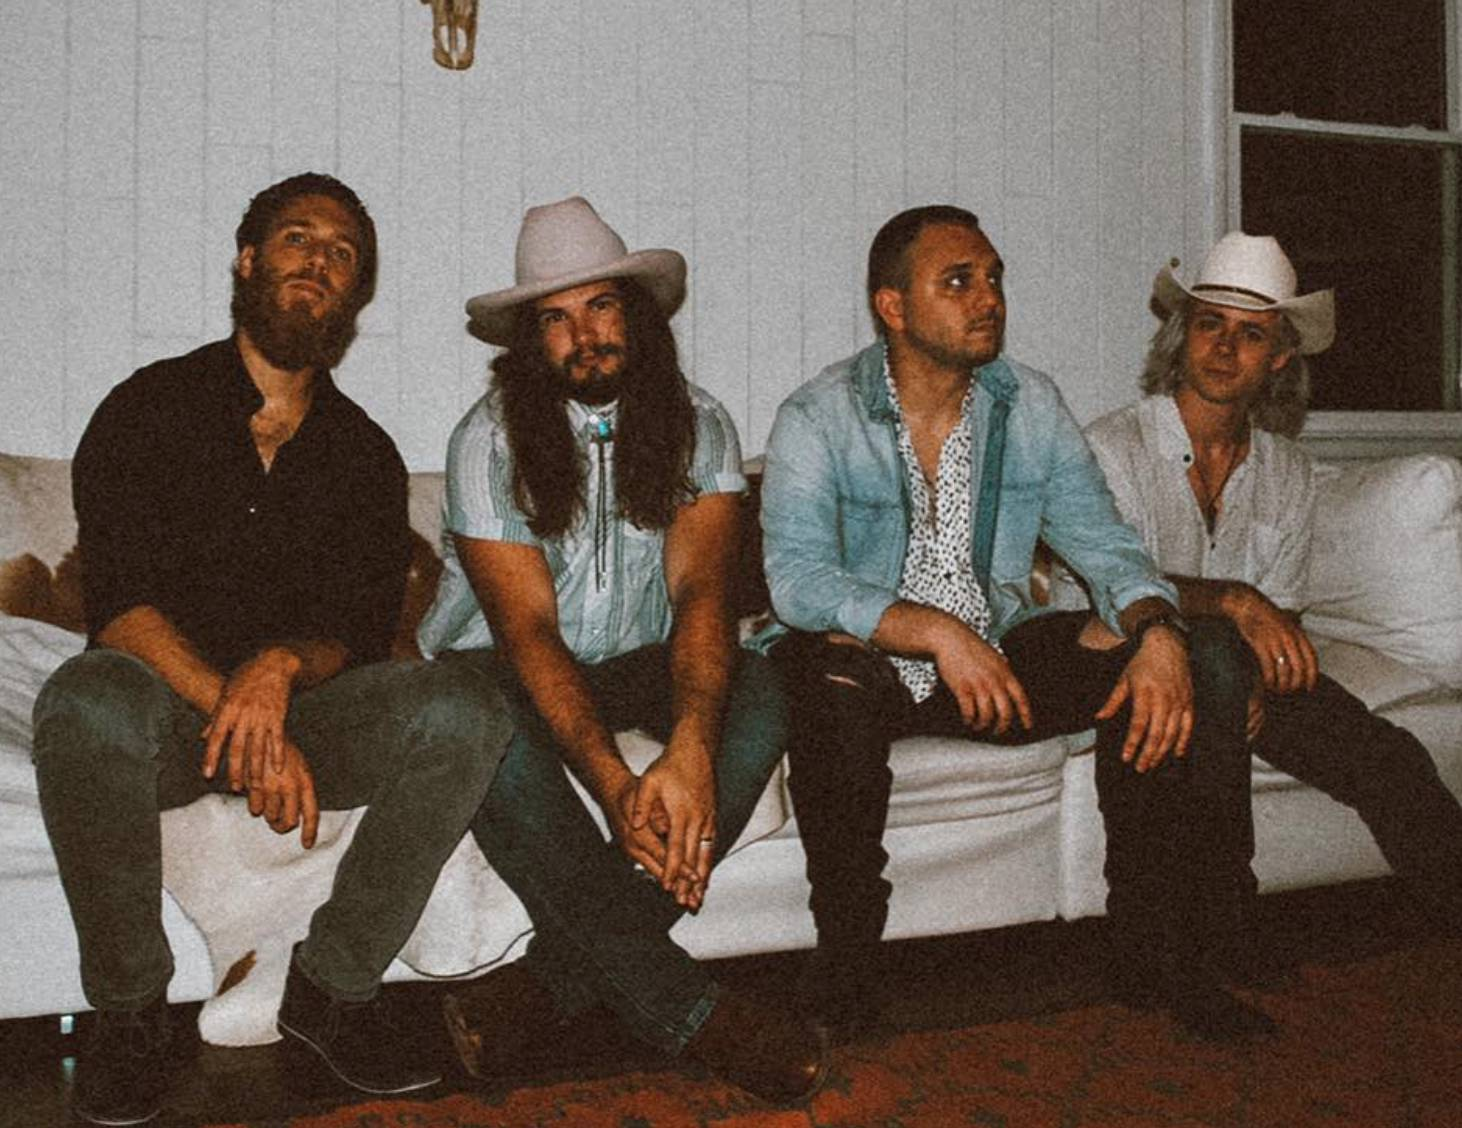 Midnight Station + Lonesome Revival